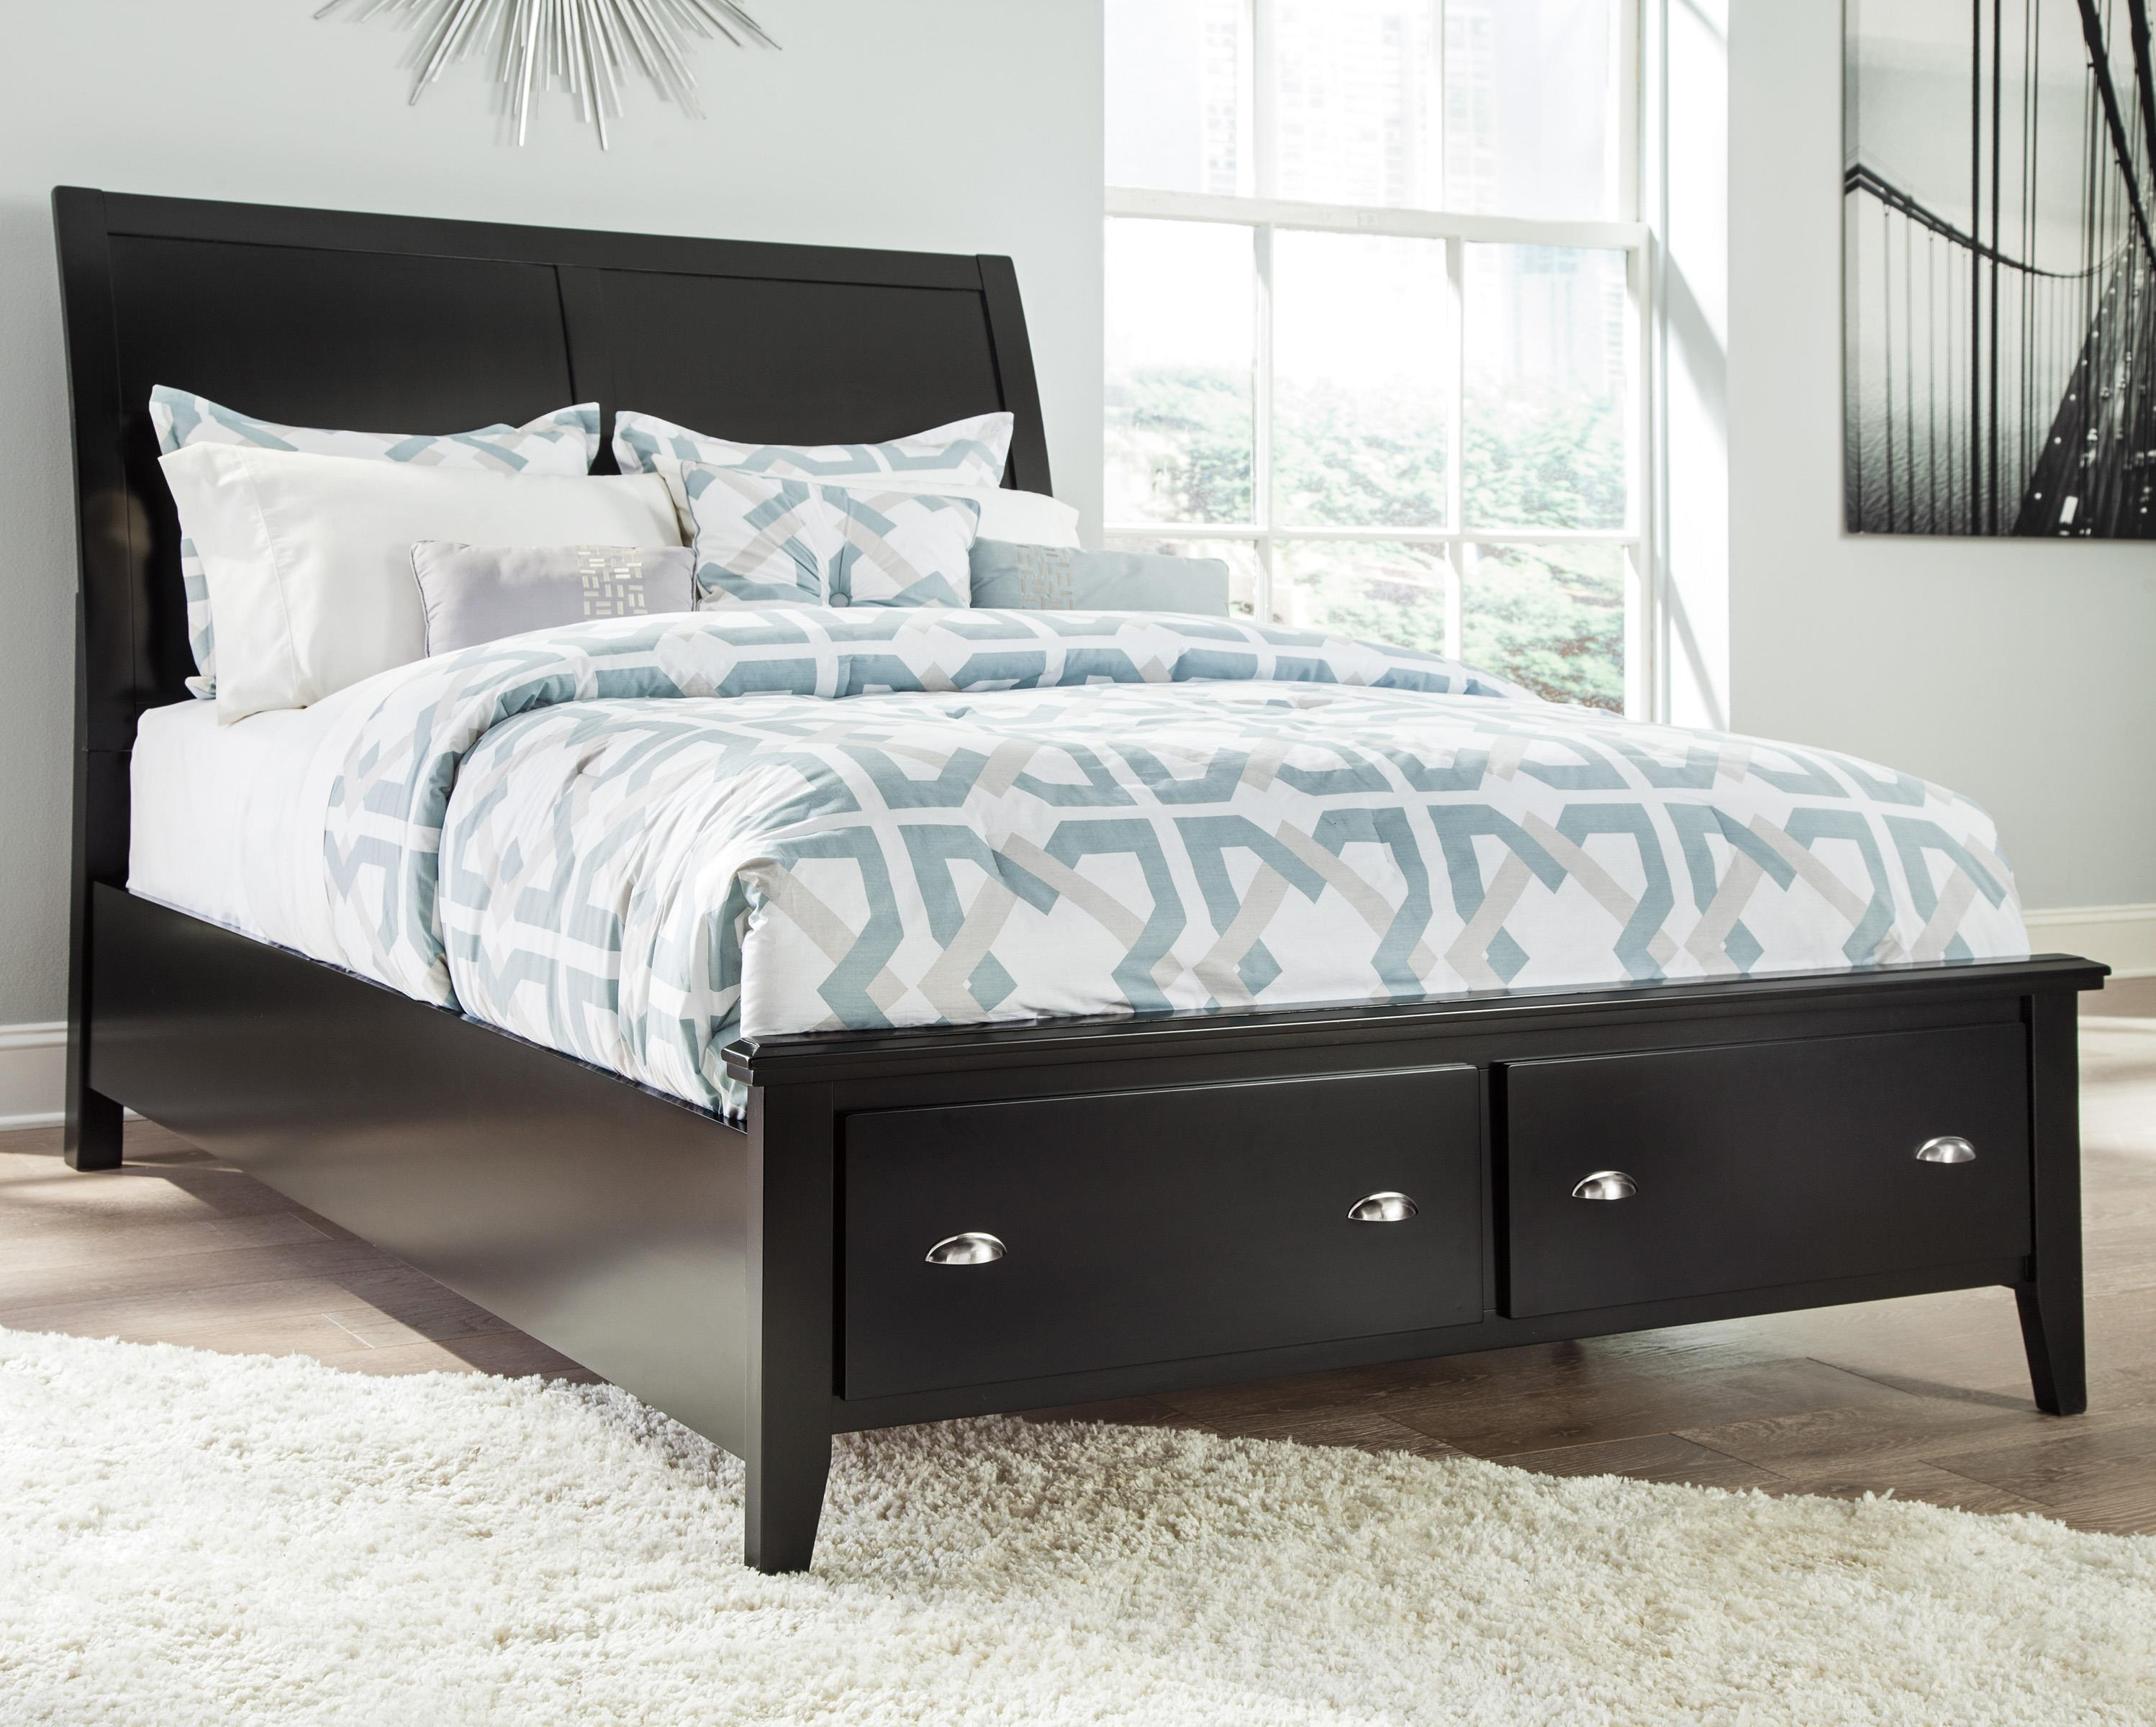 Signature Design by Ashley Braflin Queen Storage Bed with Sleigh Headboard - Item Number: B591-57+54S+96S